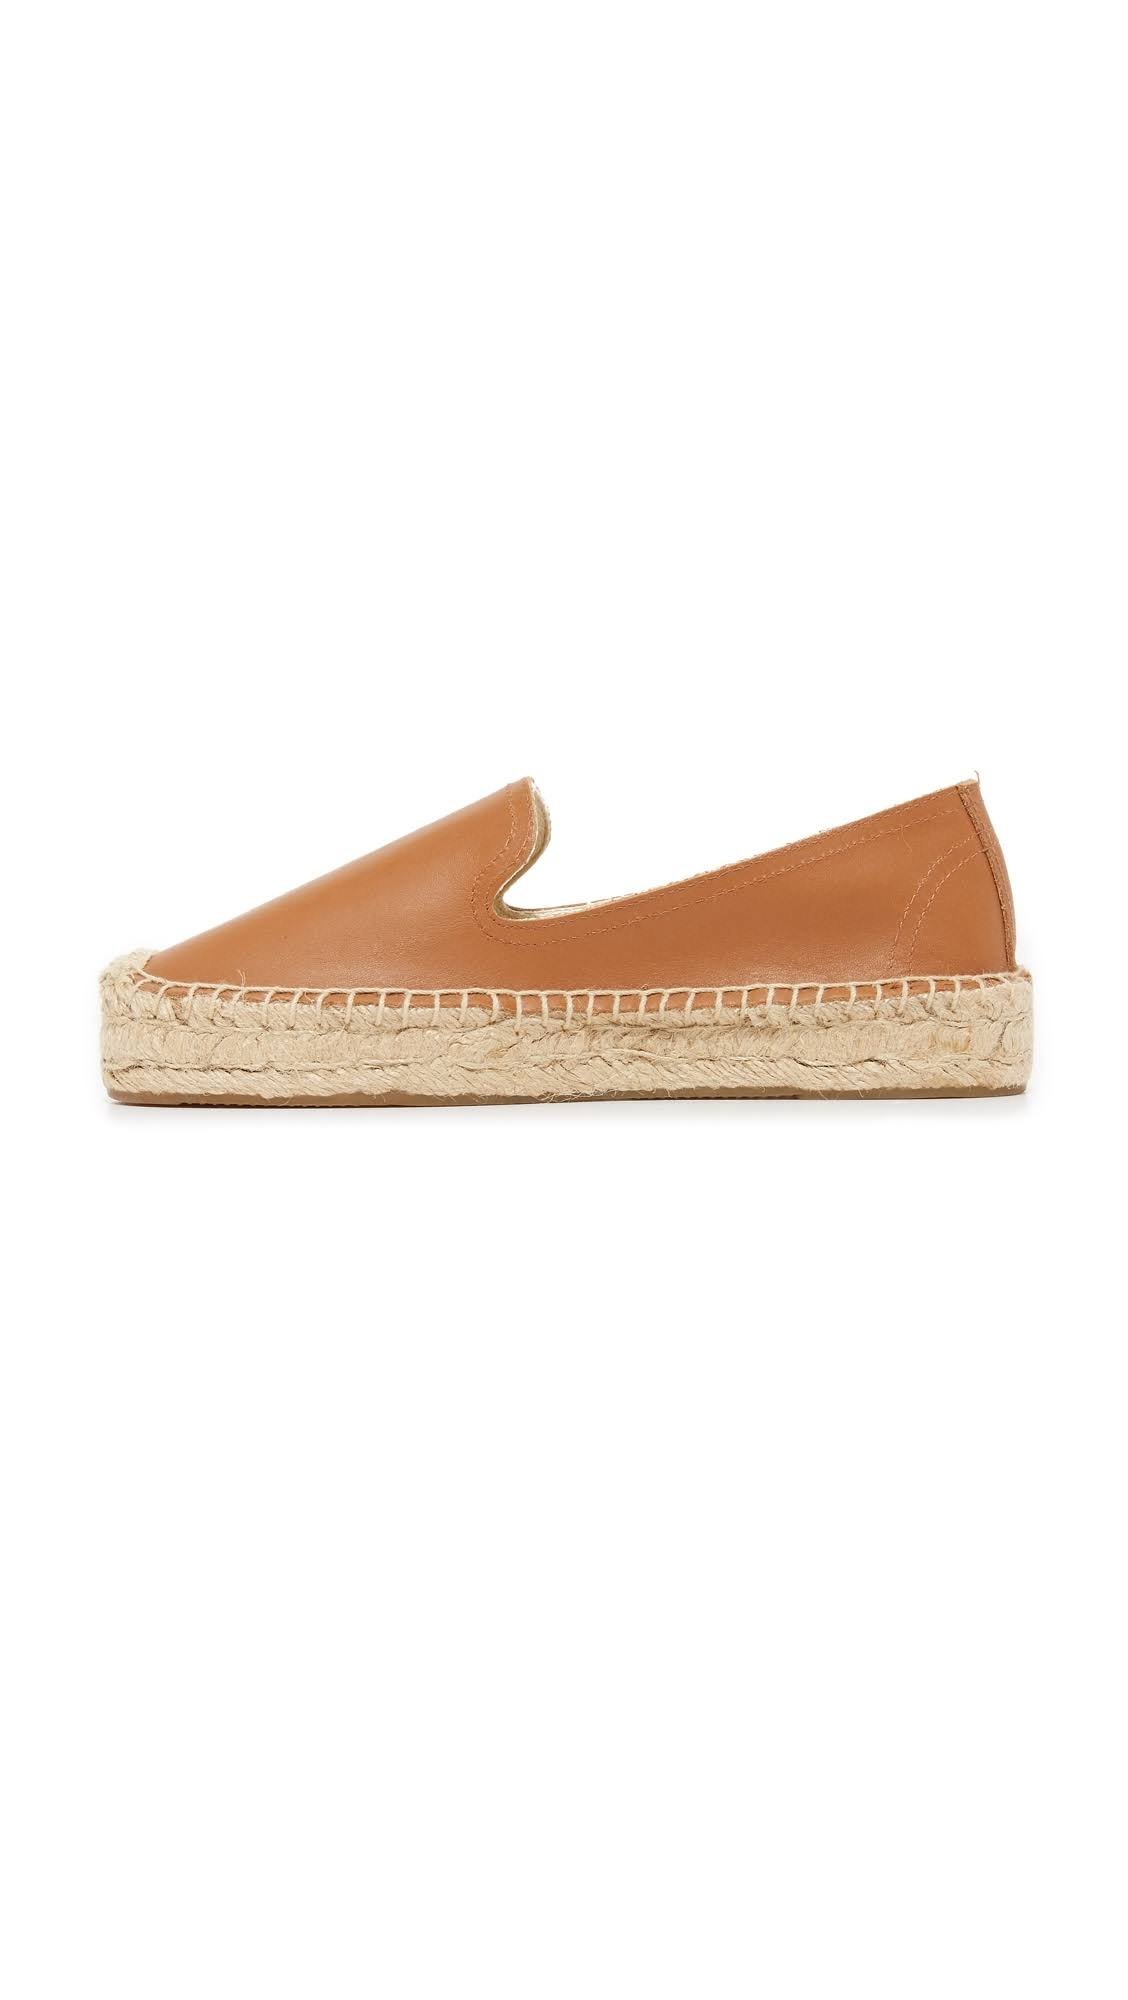 Tan Smoking 9 Leather Soludos Slippers Platform IxwAqqEUg